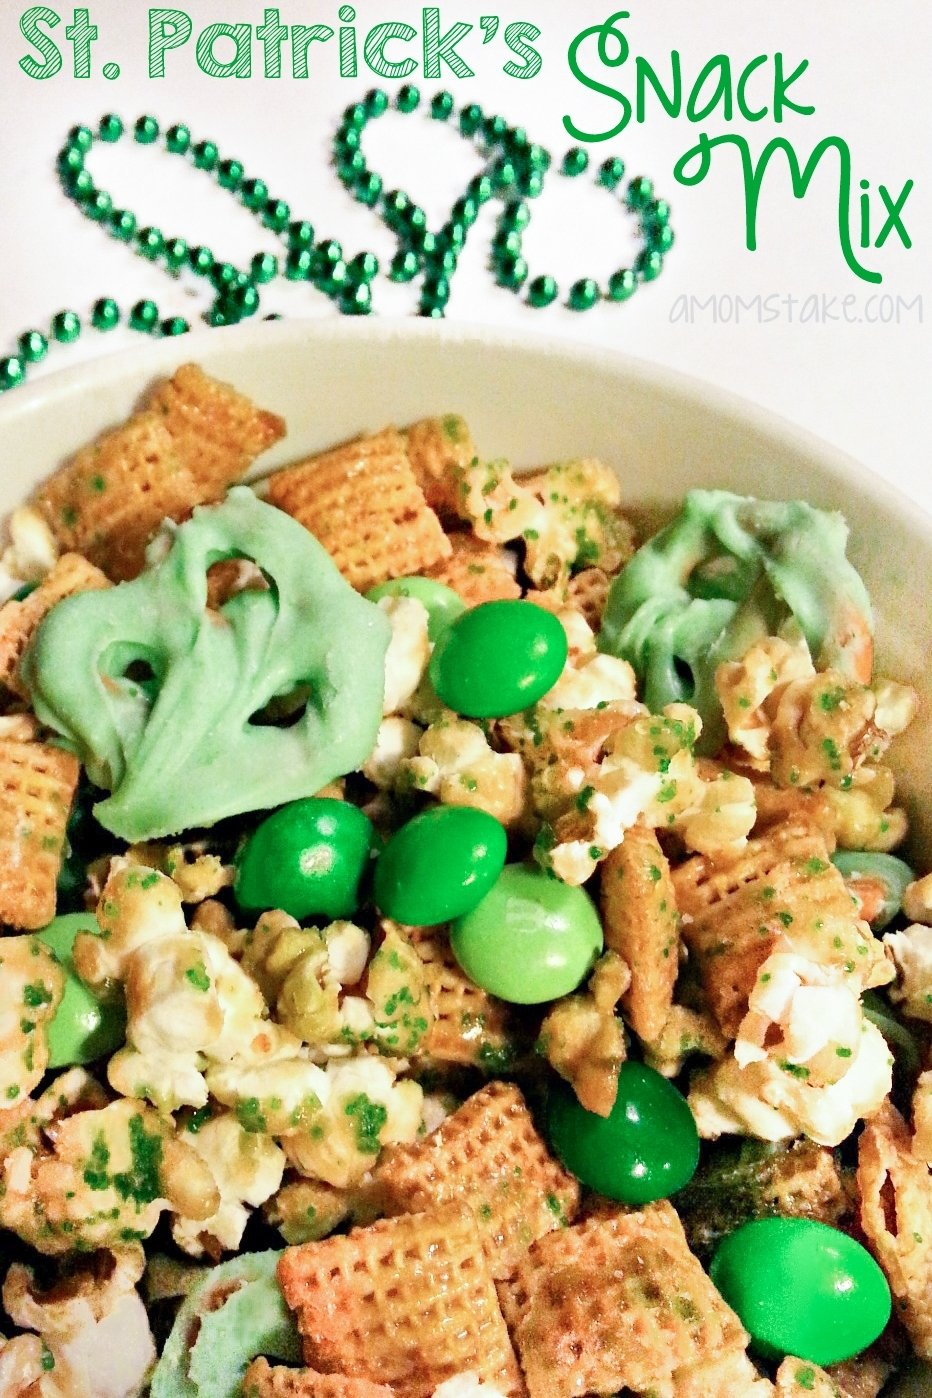 10 Elegant St Patricks Day Food Ideas st patricks day snack mix a moms take 2020